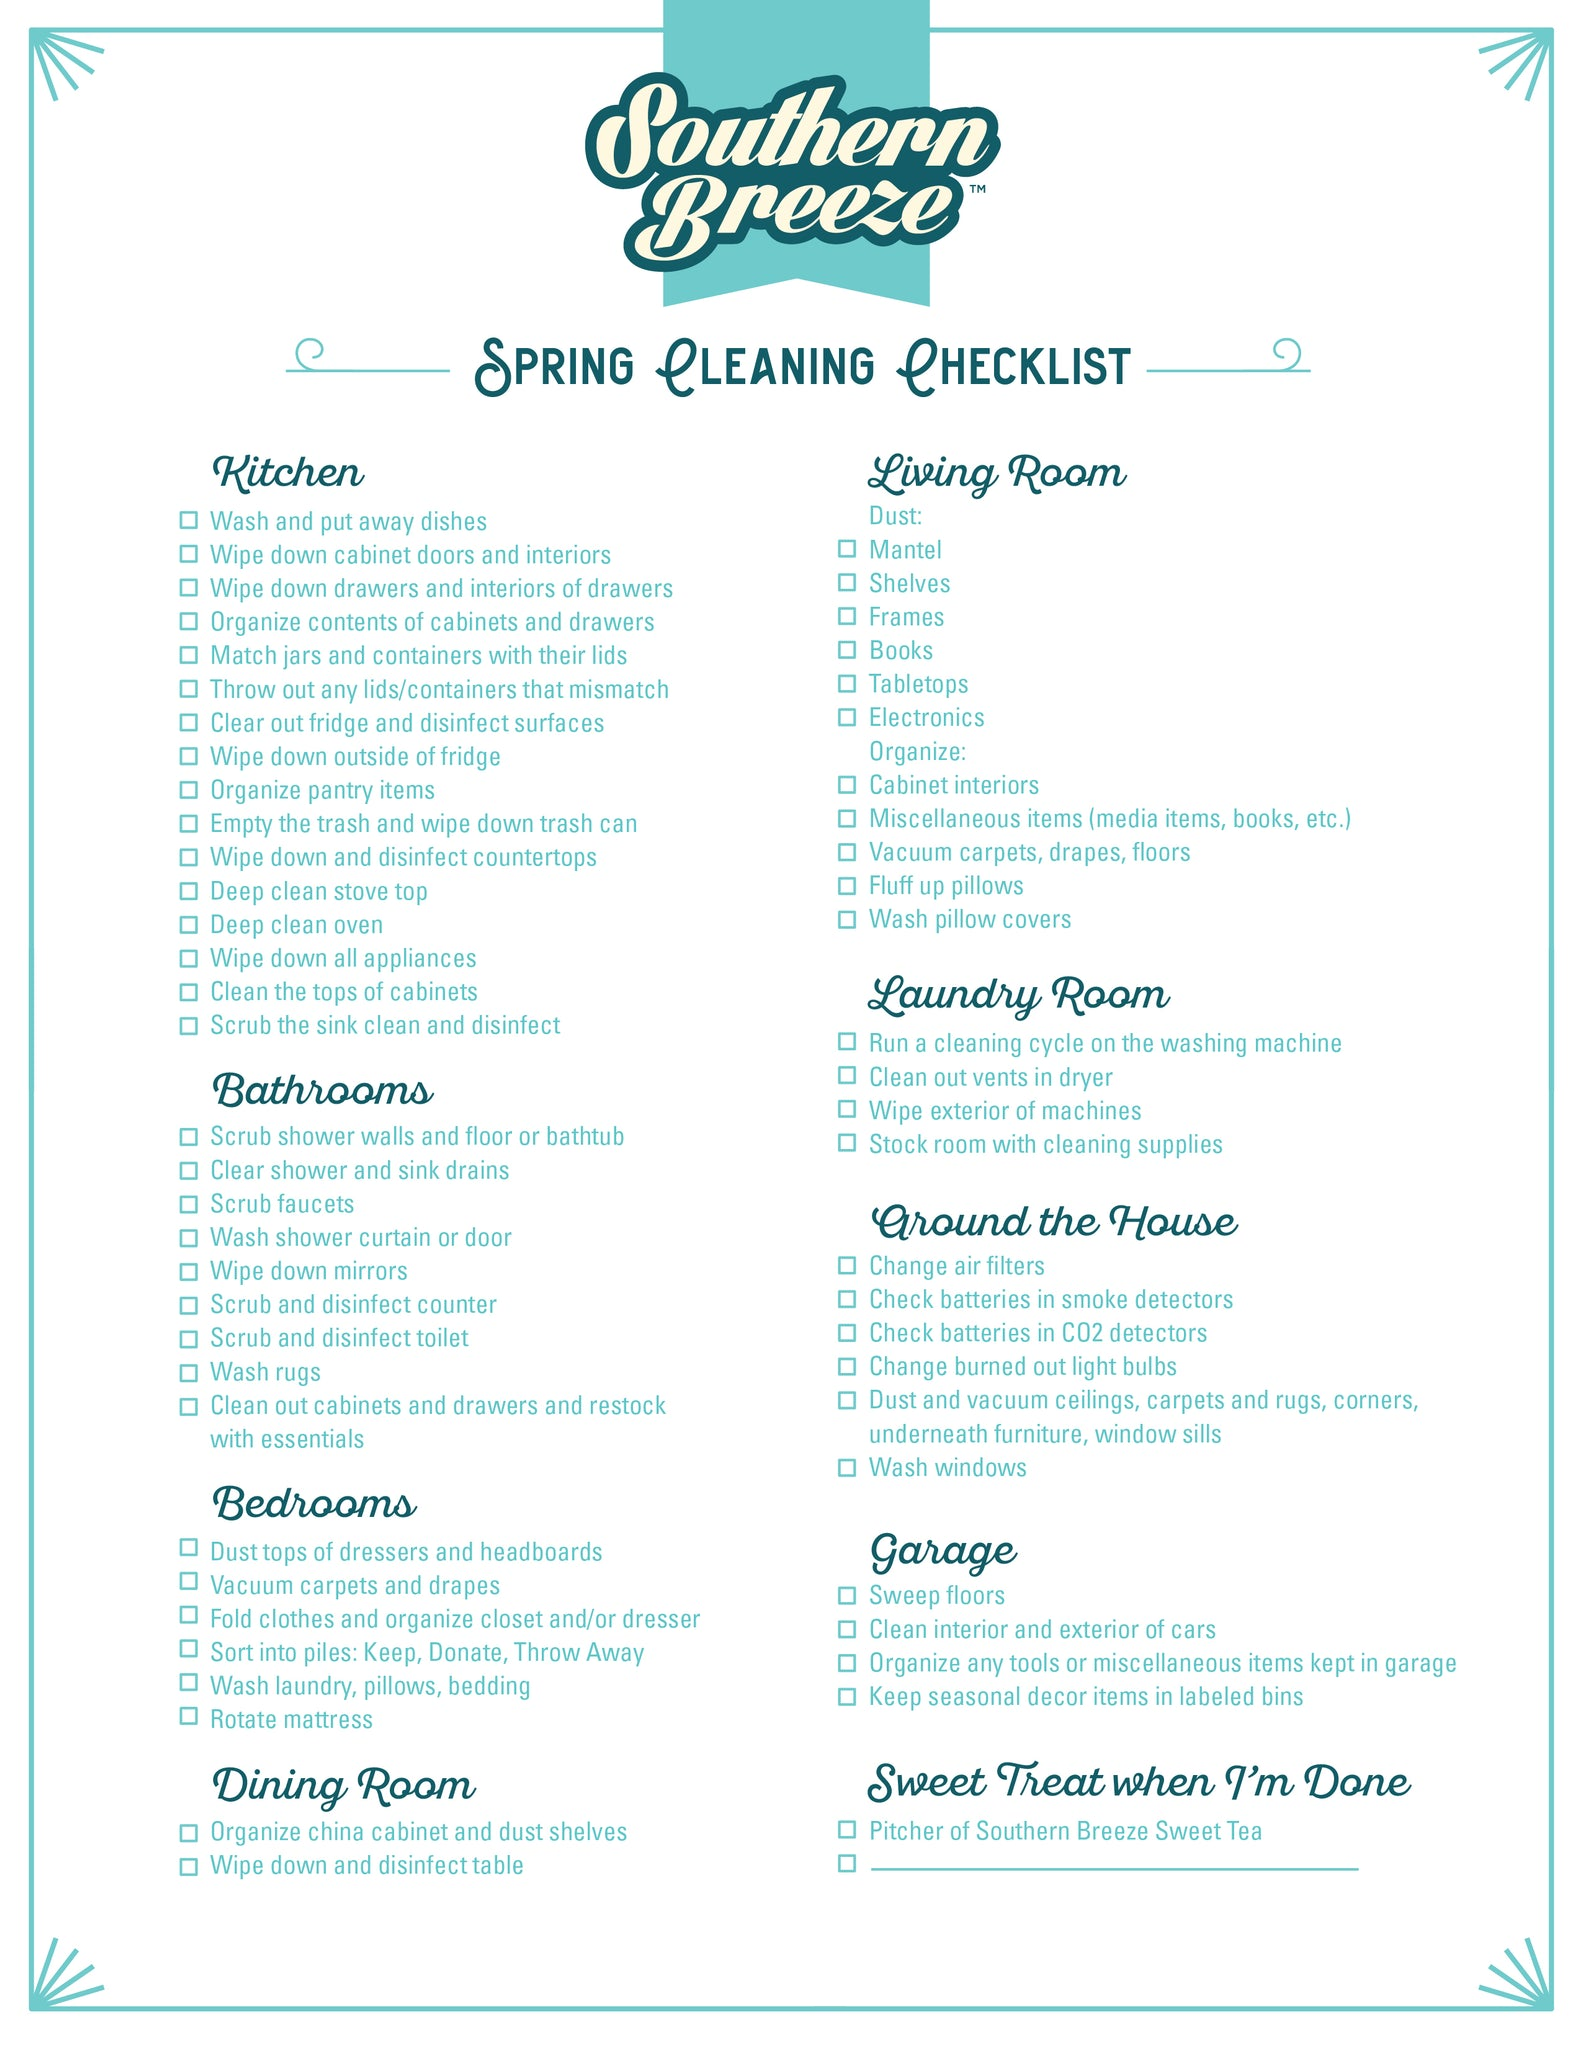 Southern Breeze Spring Cleaning Checklist